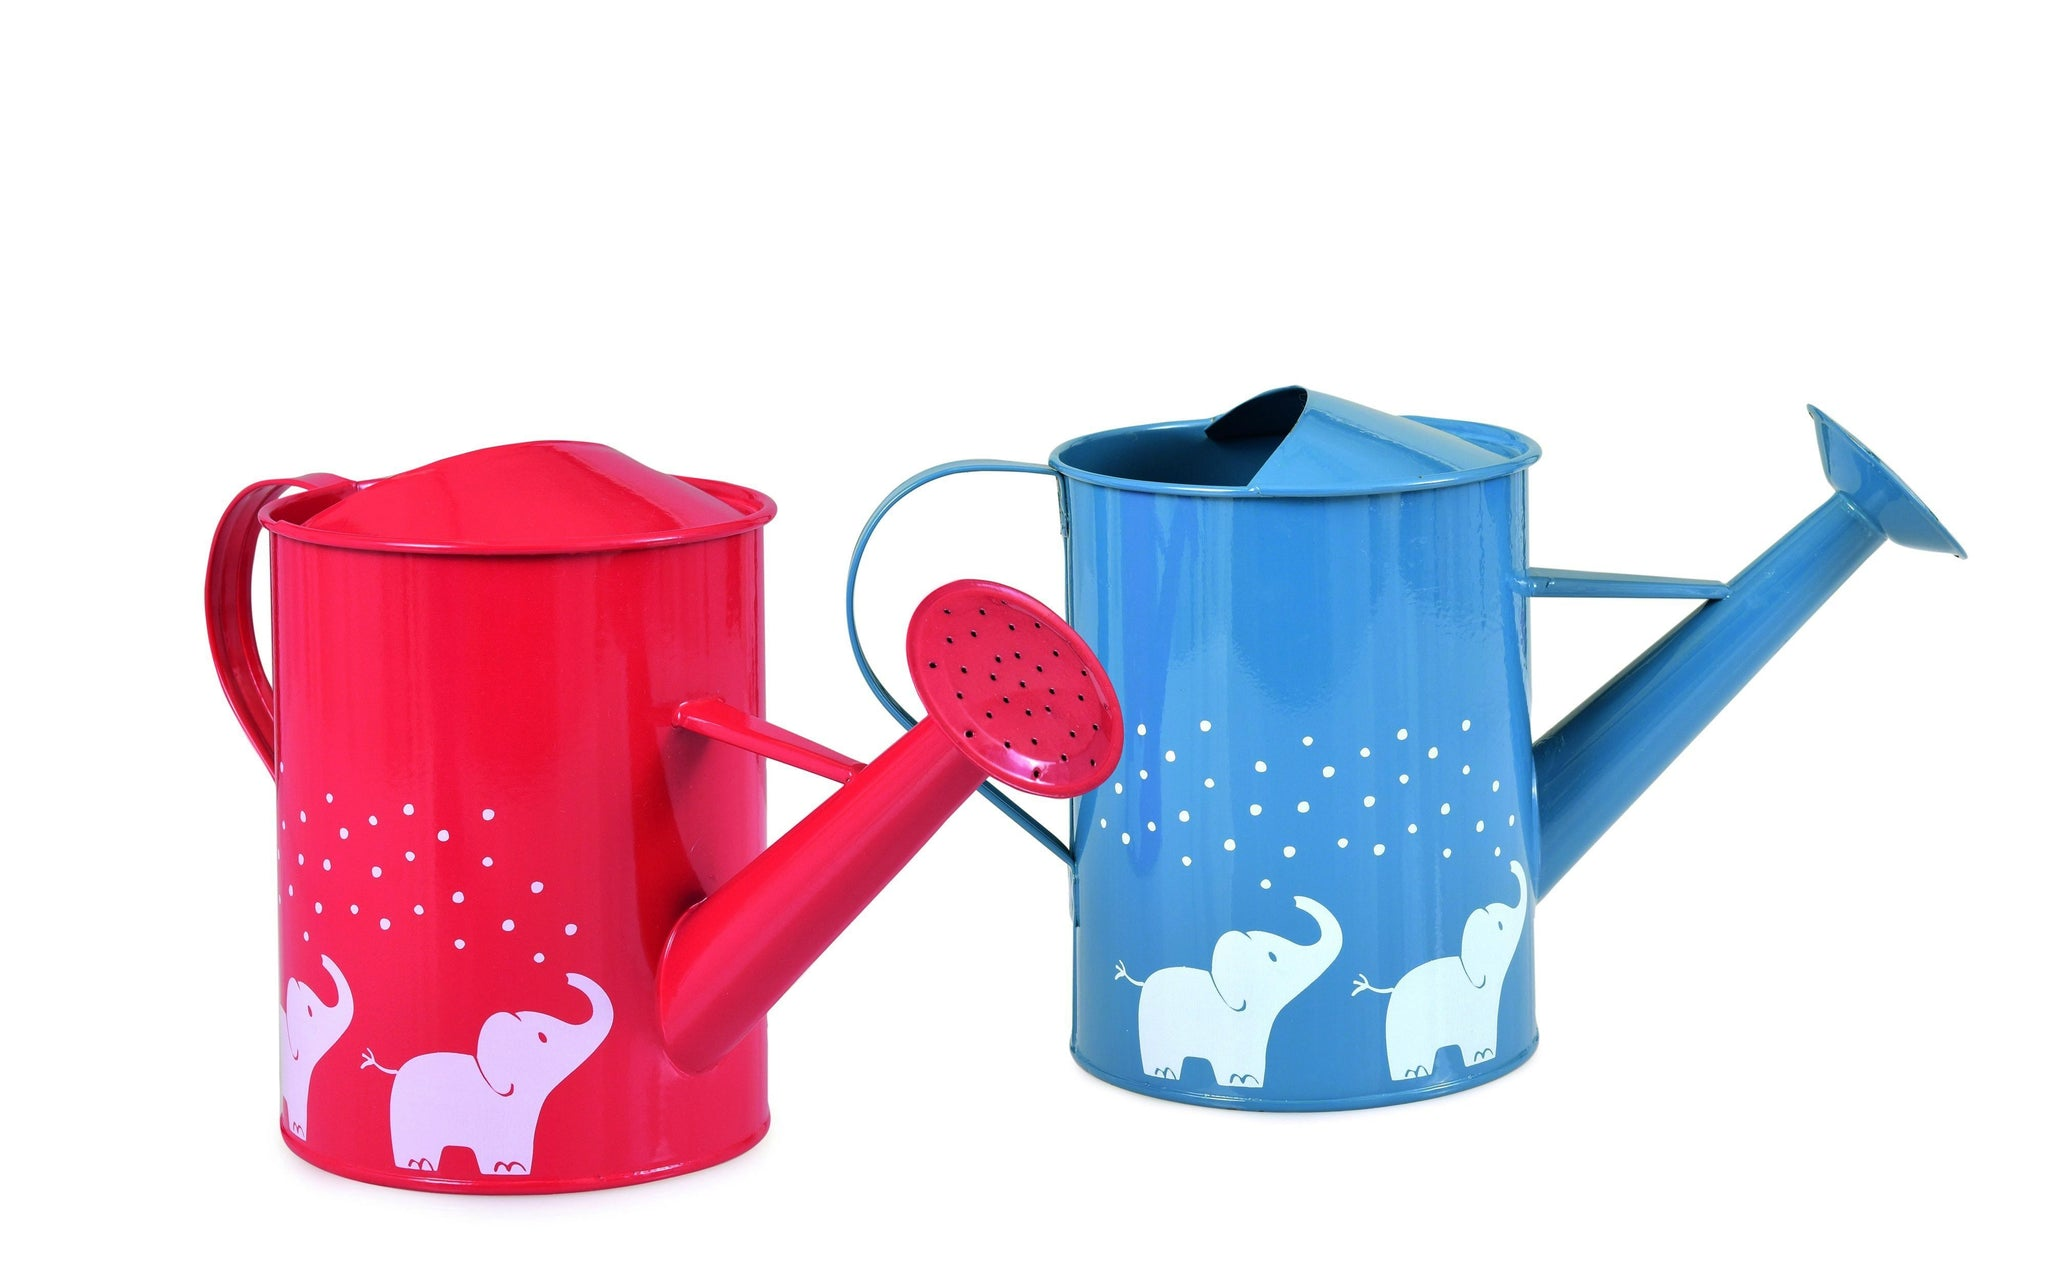 Egmont red and blue watering cans for children with white elephants motif